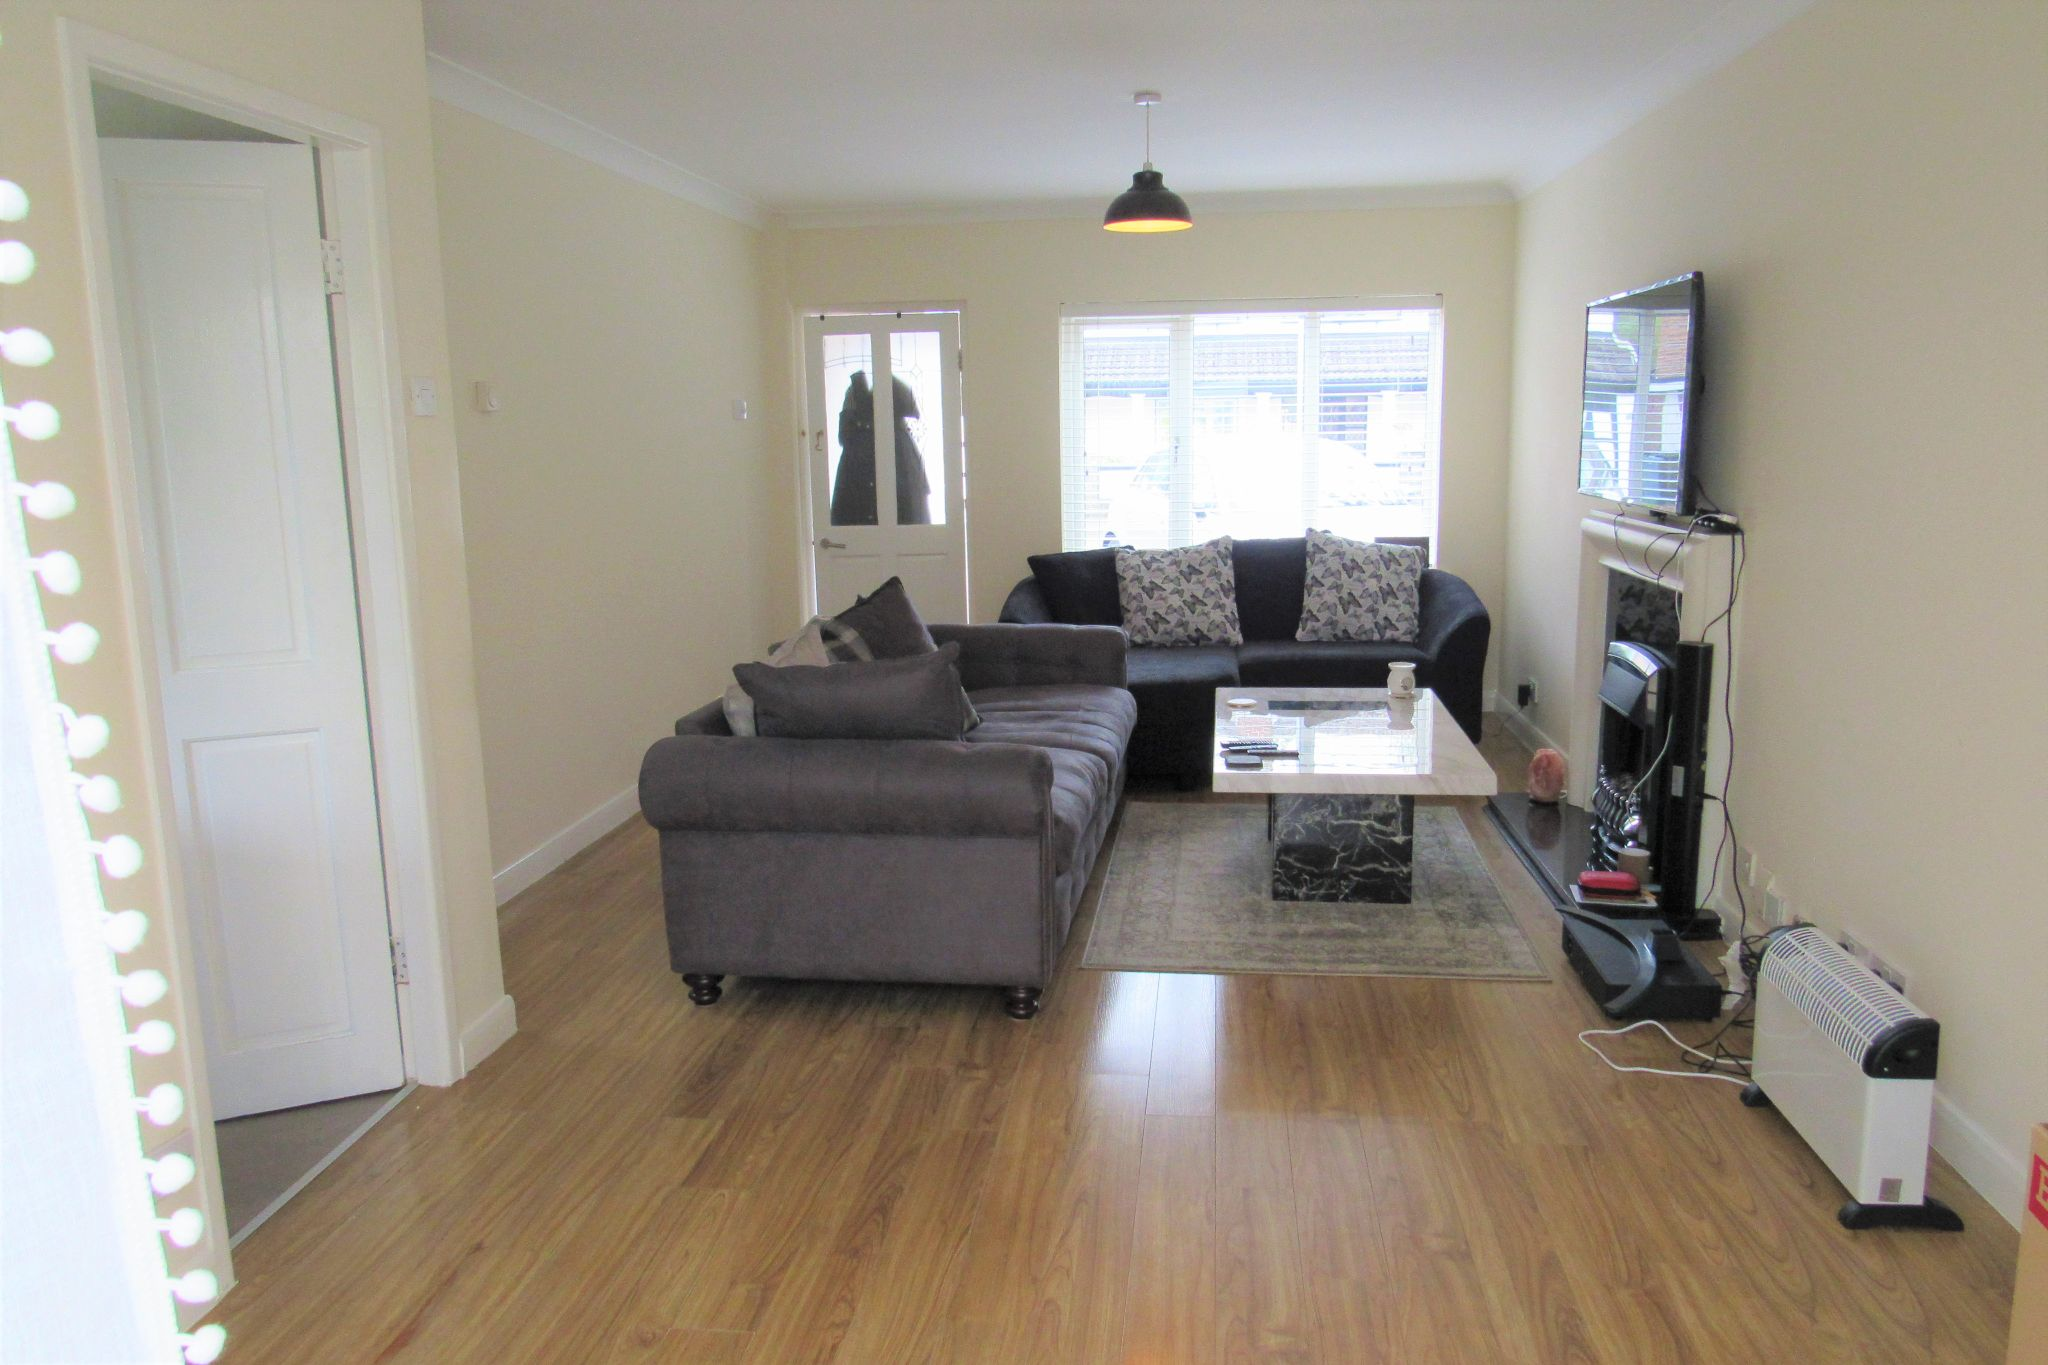 3 bedroom detached house For Sale in Manchester - Photograph 7.